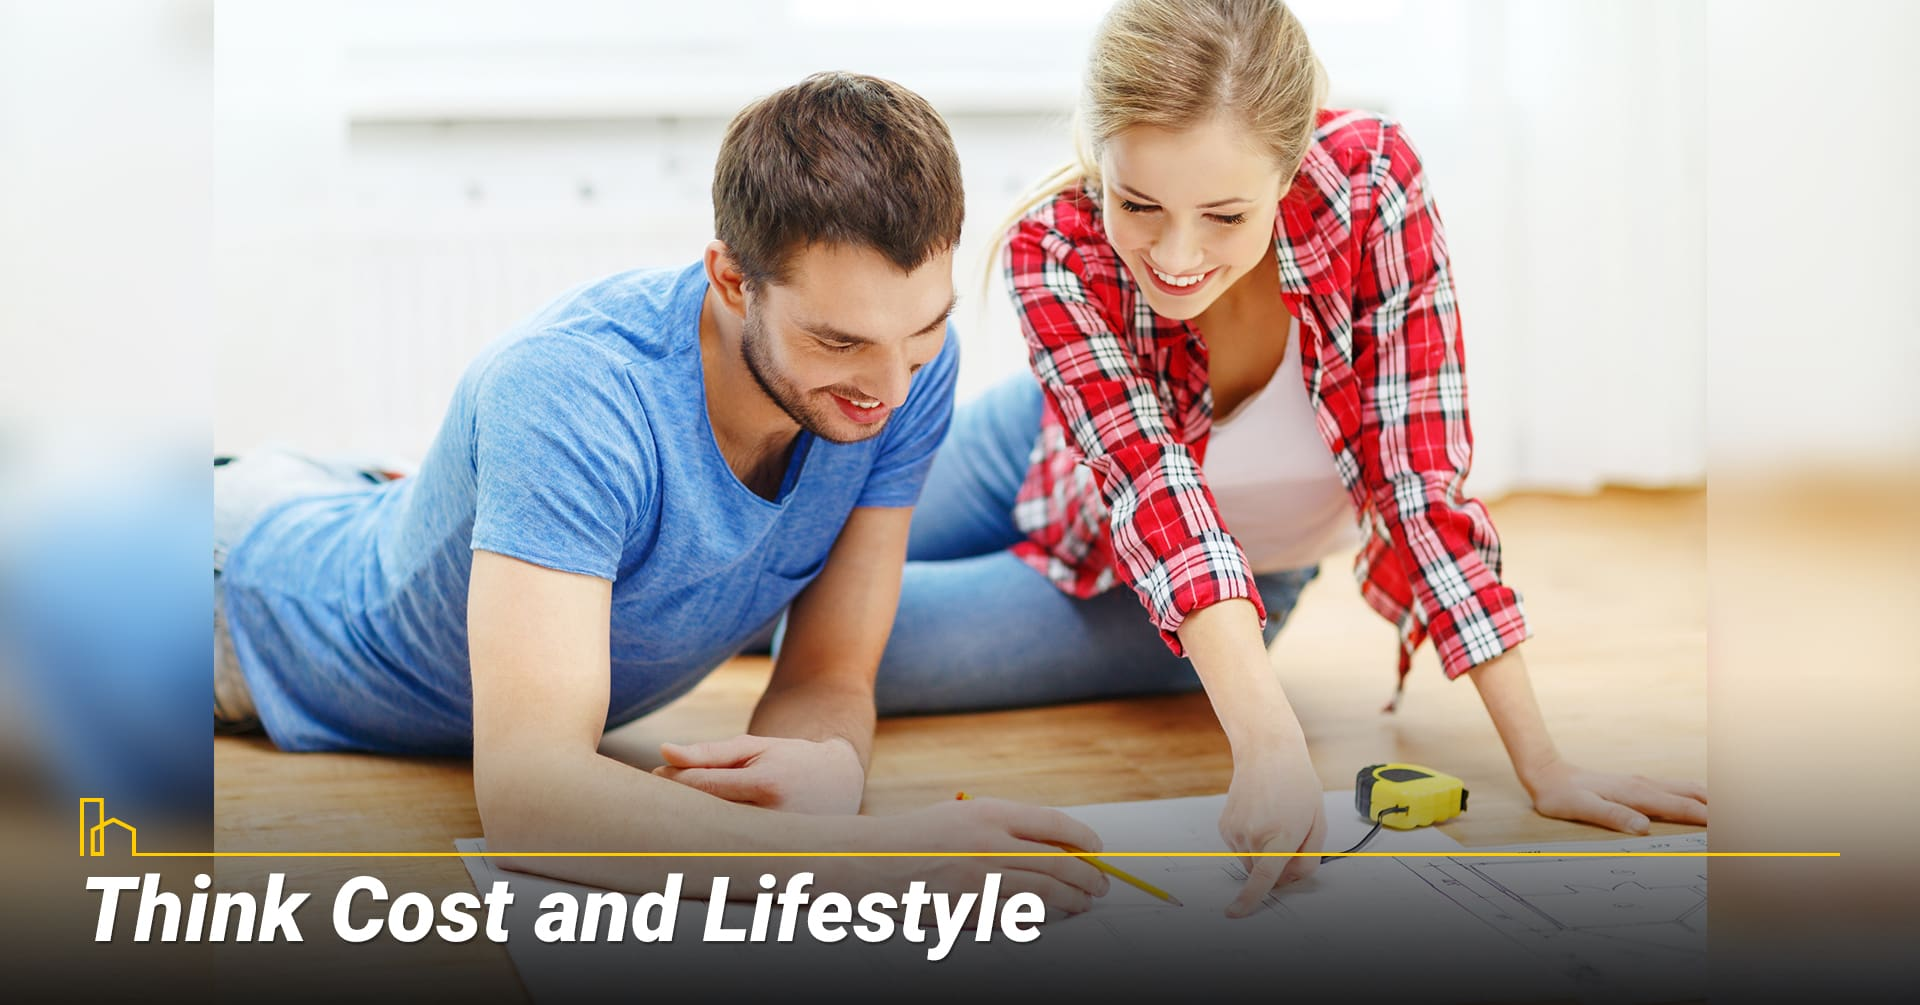 Think Cost and Lifestyle, cost and lifestyle for your considerations